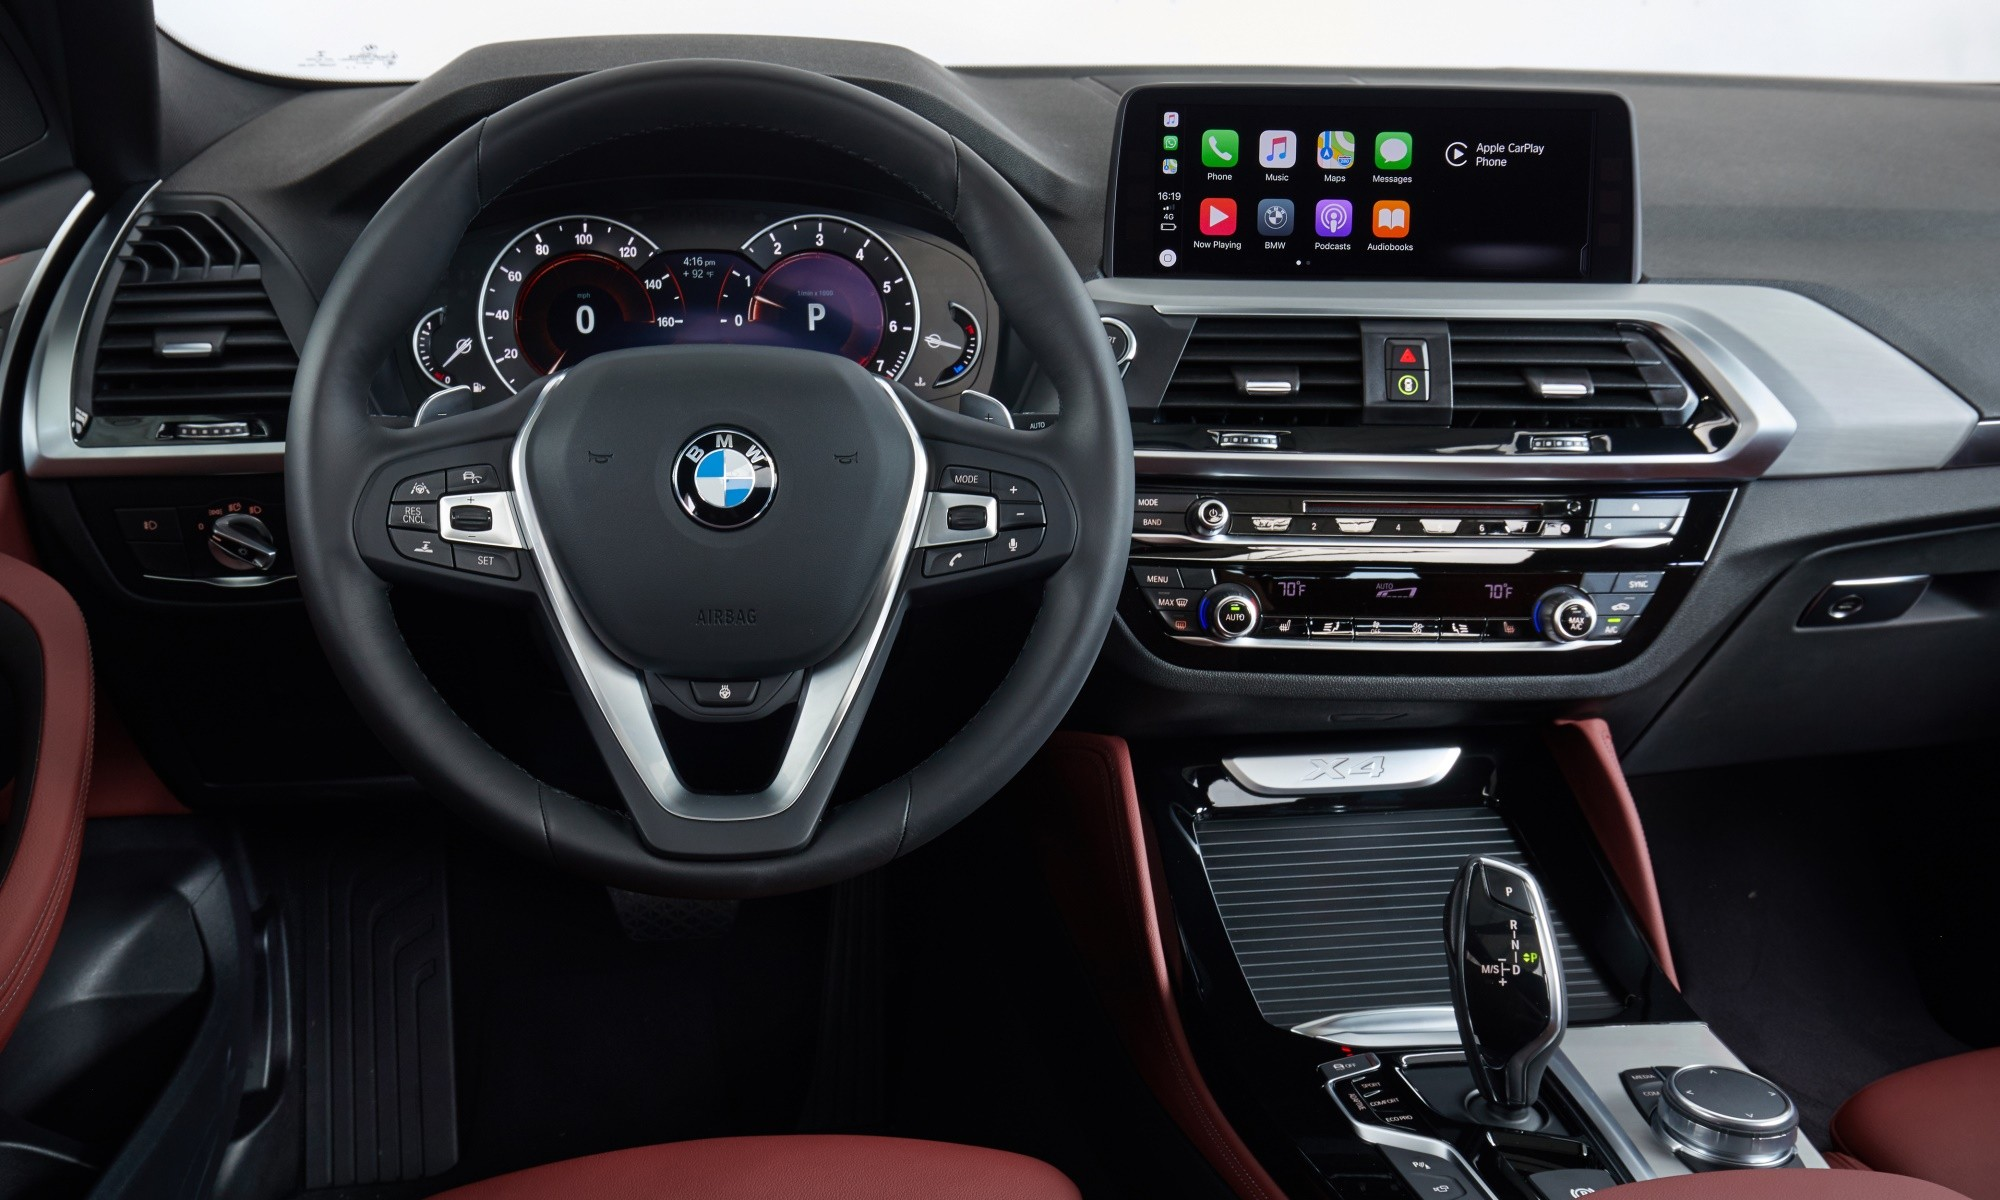 New BMW X4 interior boasts the latest generation BMW electronics